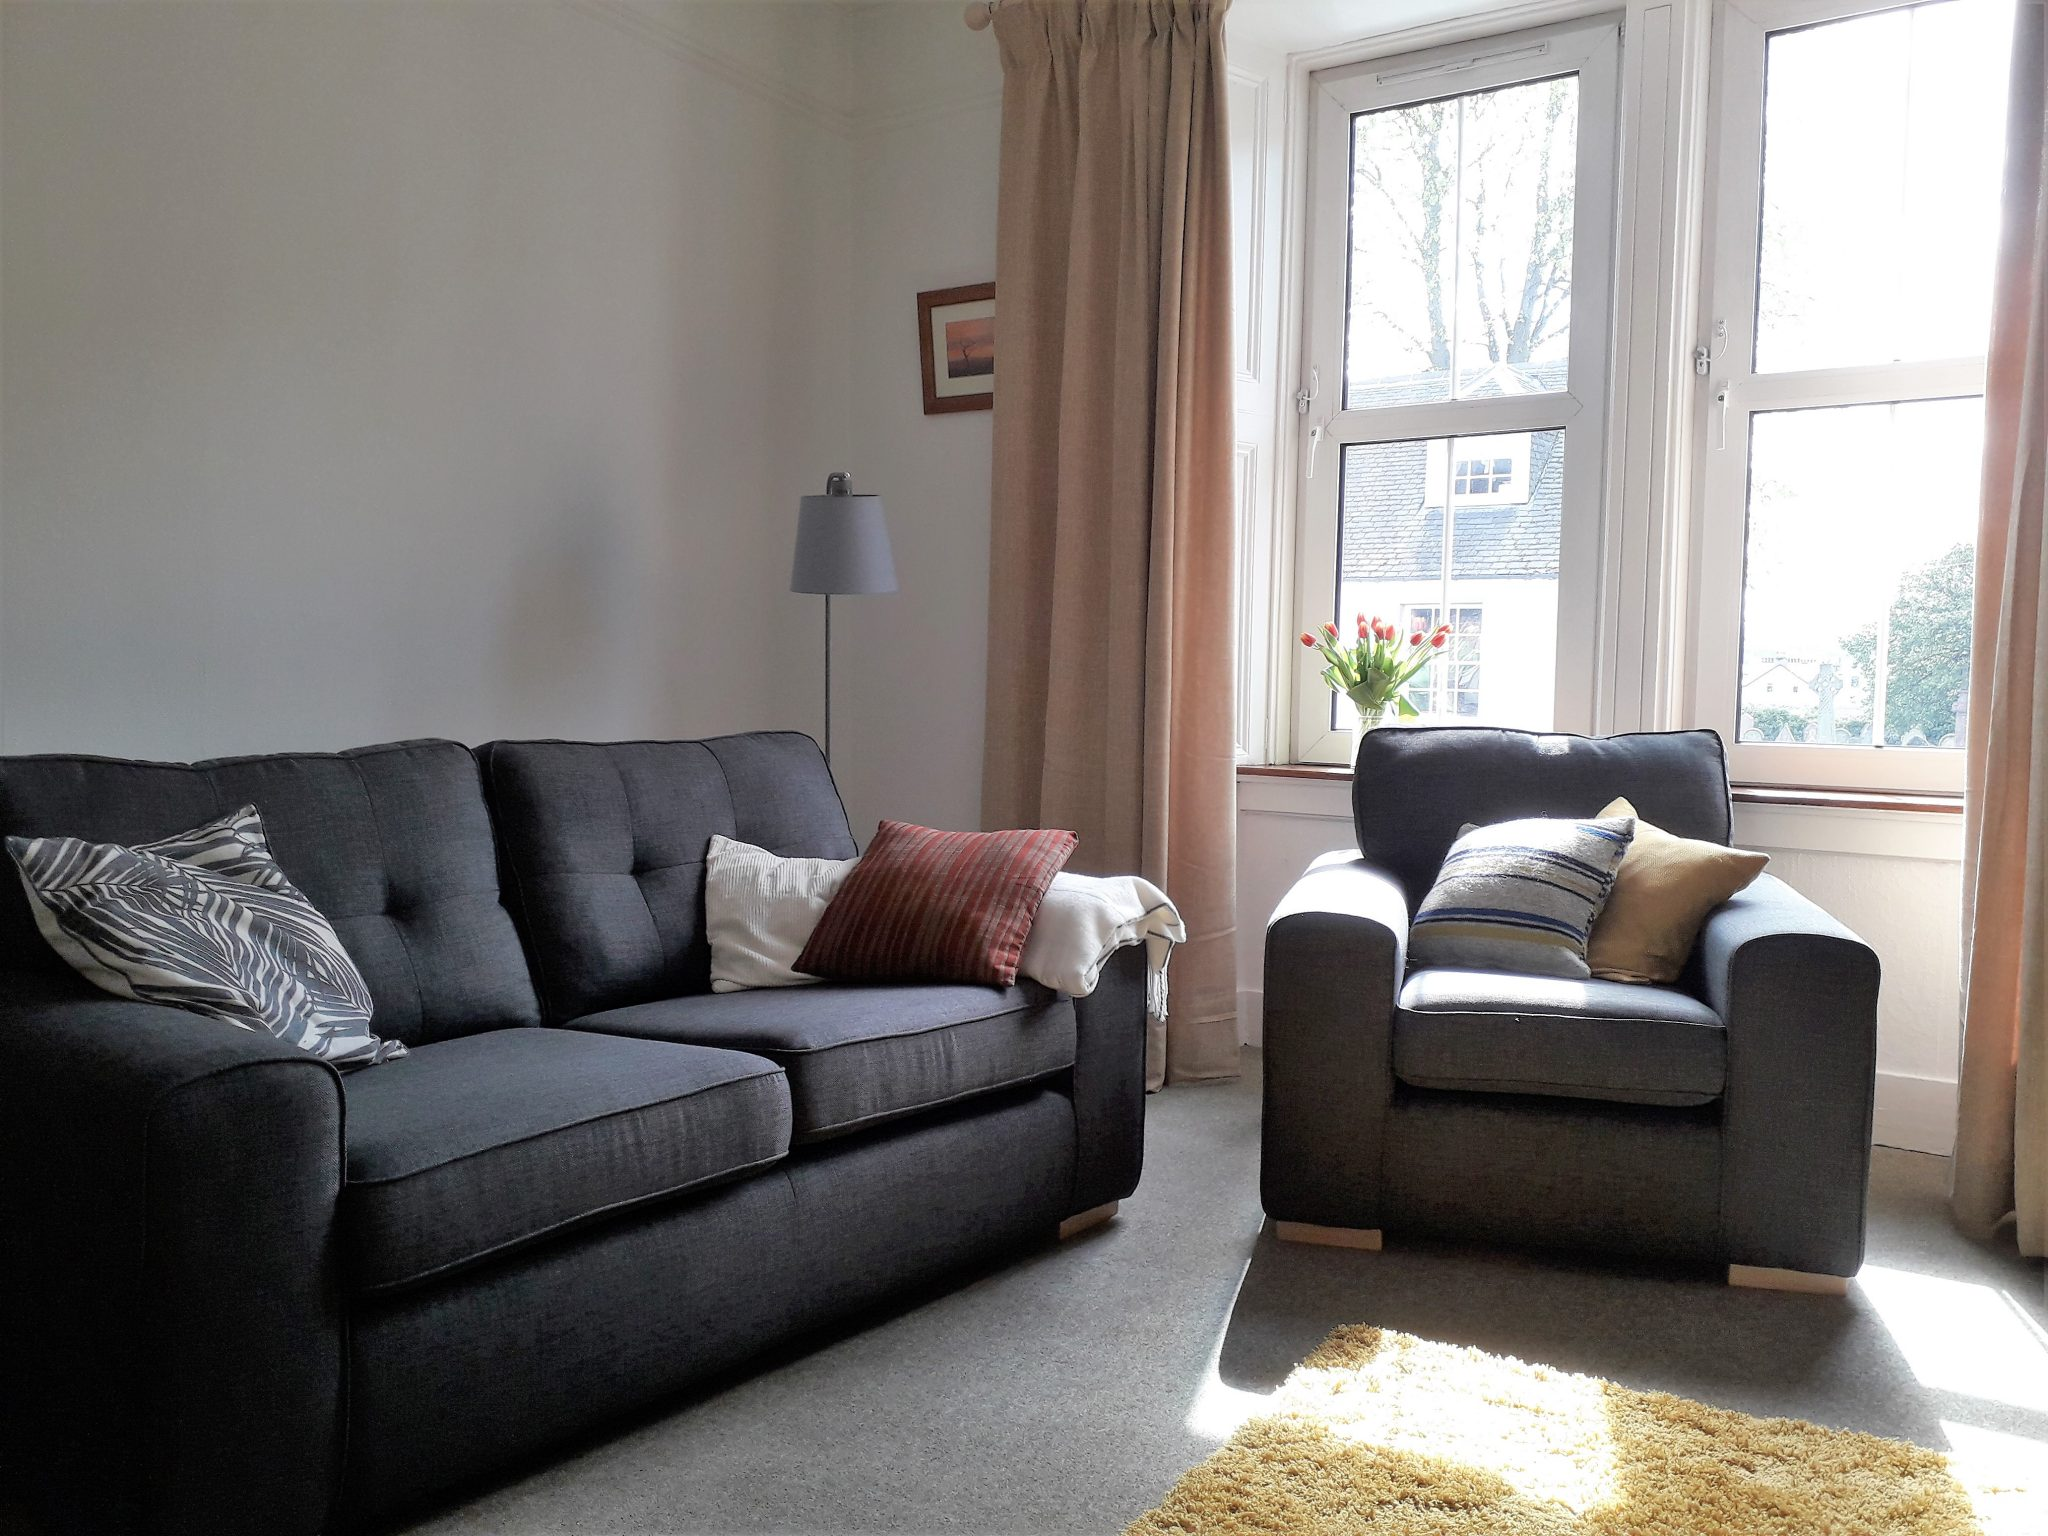 Living room showing grey 2 seater sofa and an armchair in front of a large windowwith a vase of tulips on the window sill